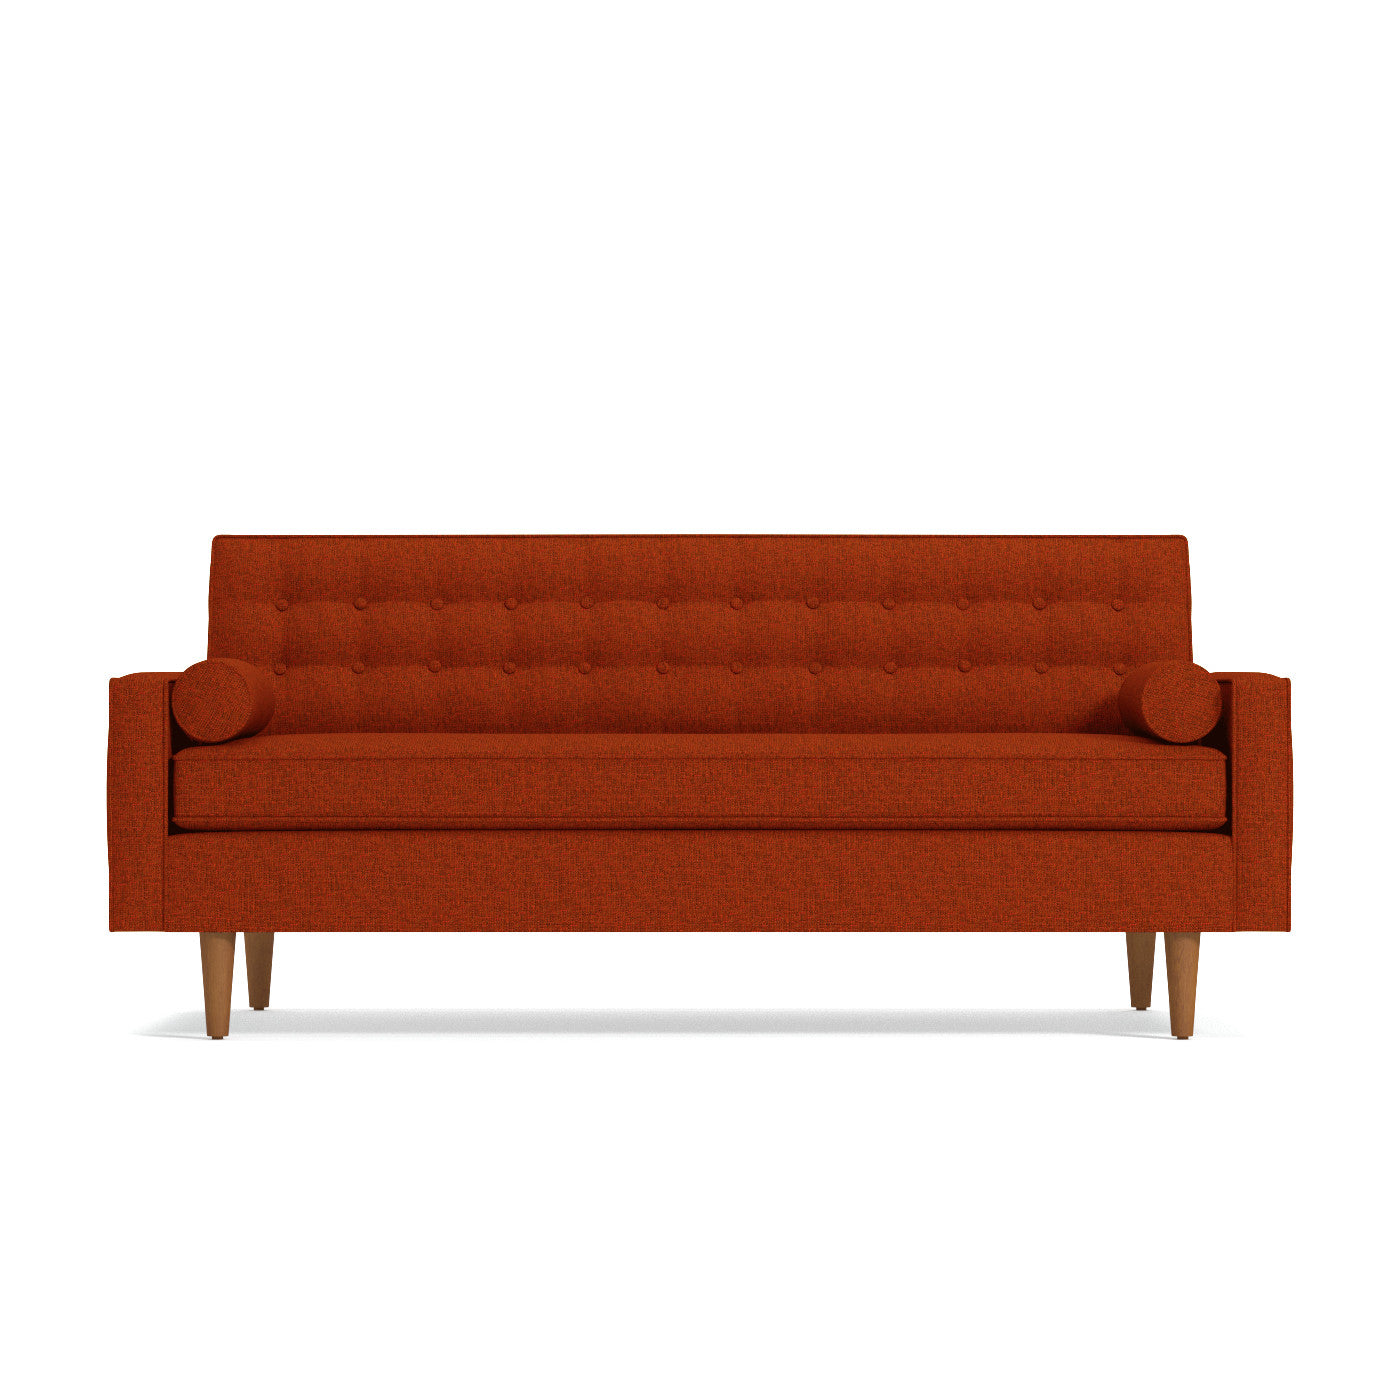 Saturn sofa choice of fabrics apt2b for Albany saturn sectional sofa chaise